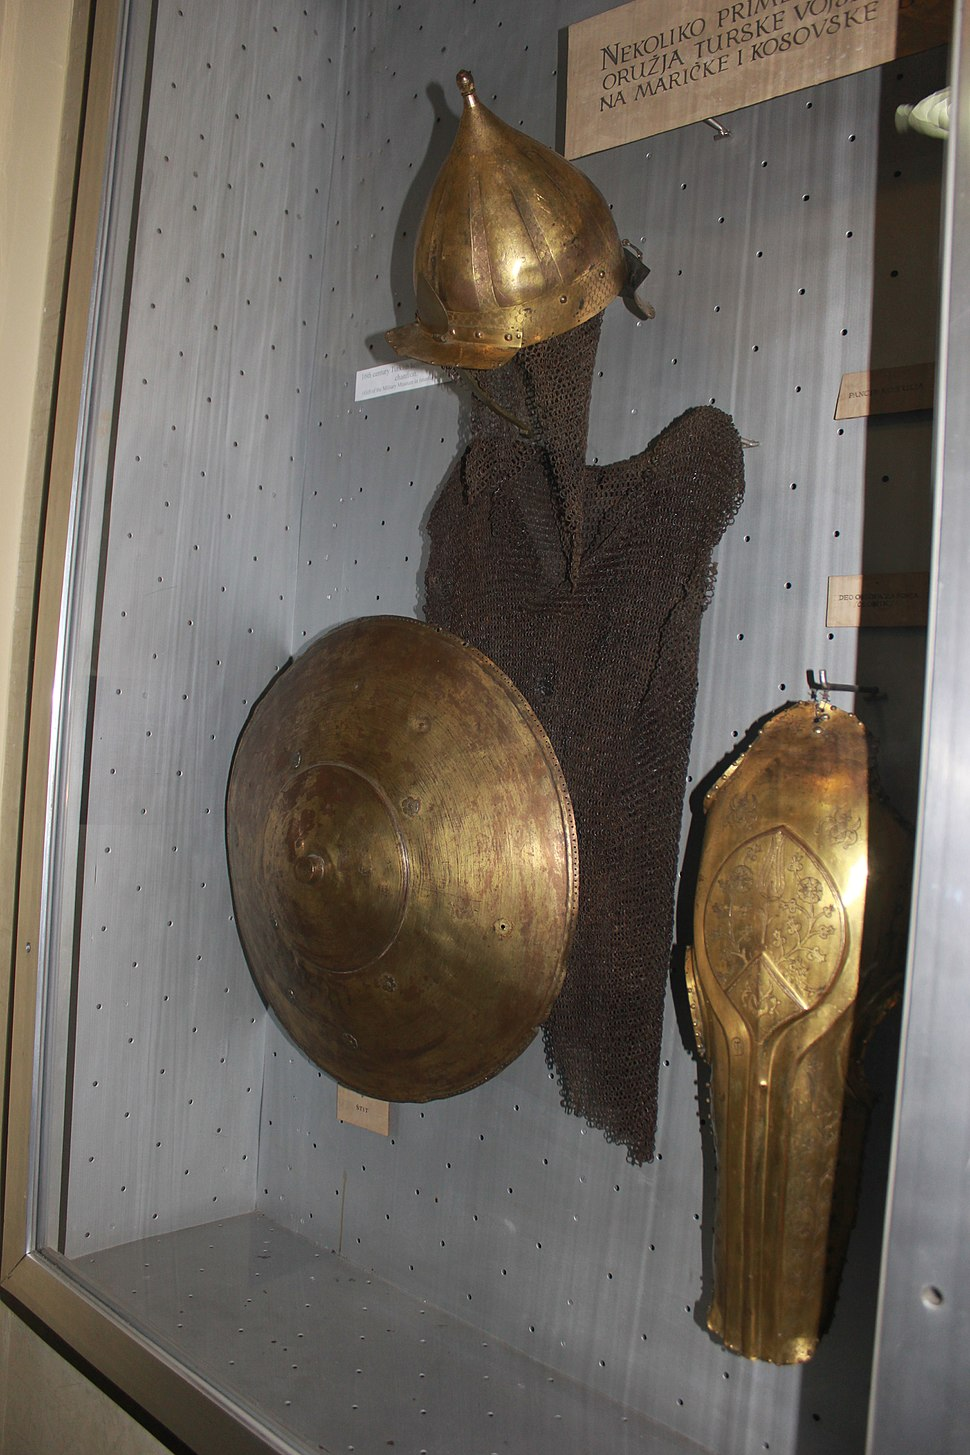 Turkish armor during battles of Marica and Kosovo